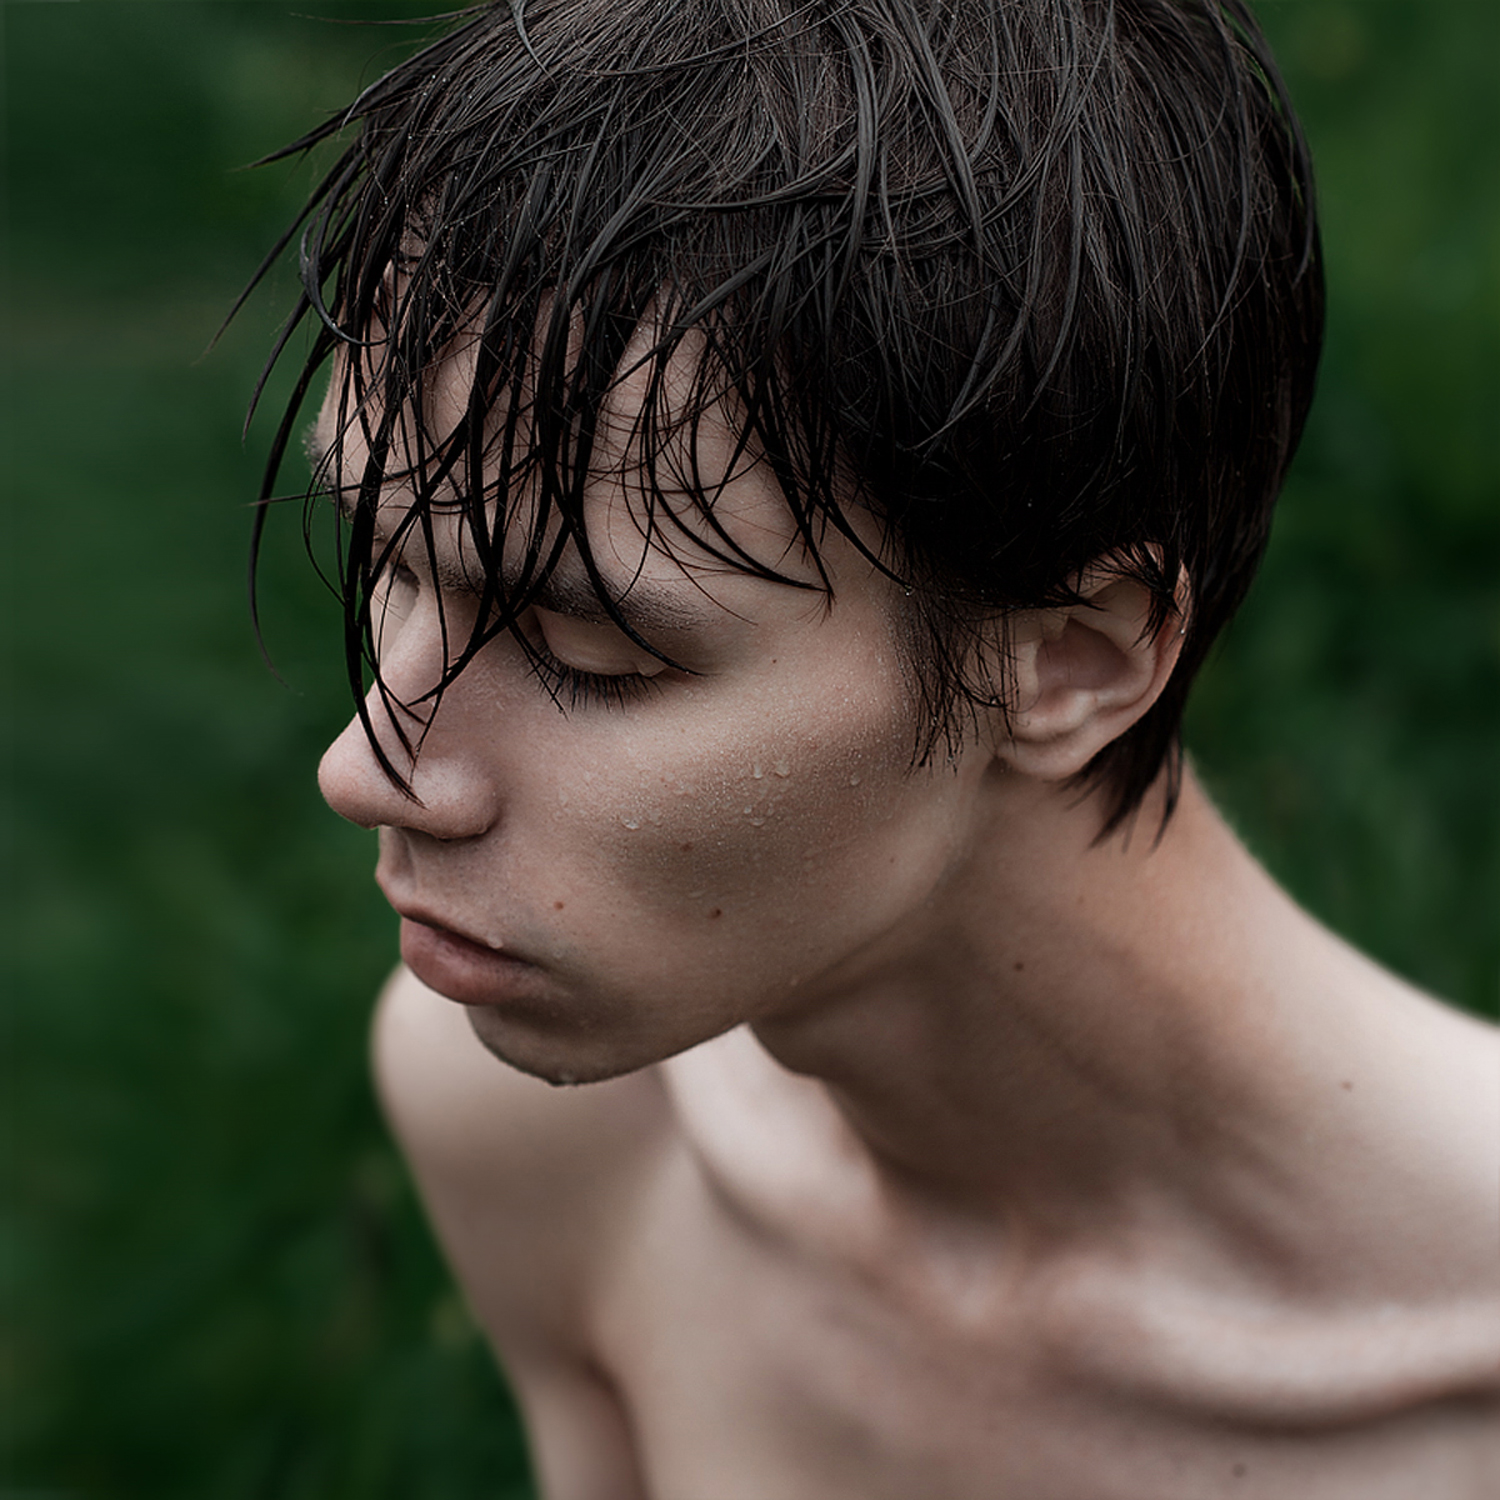 wet portrait